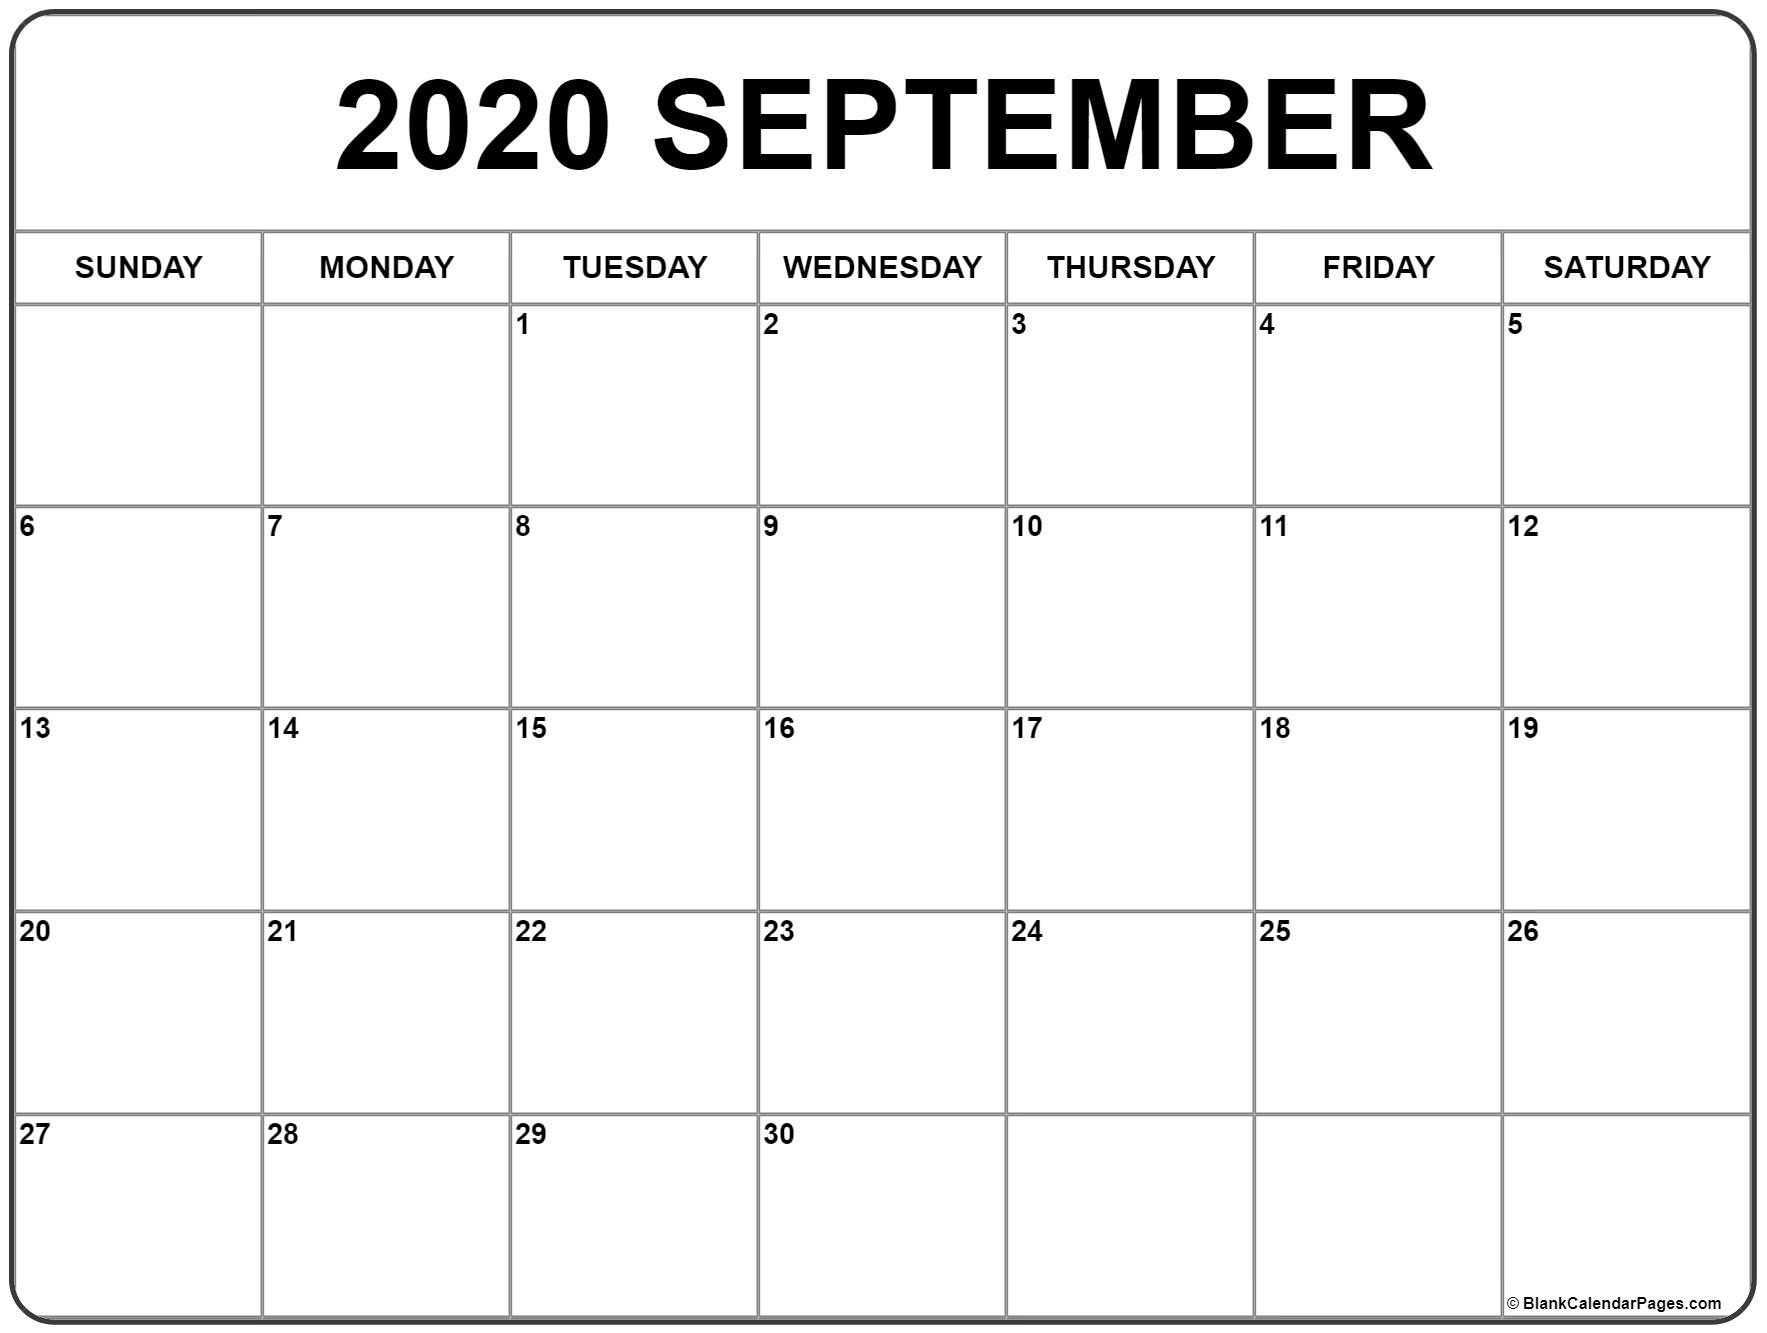 September 2020 Calendar | Free Printable Monthly Calendars  2020 Calendar Template